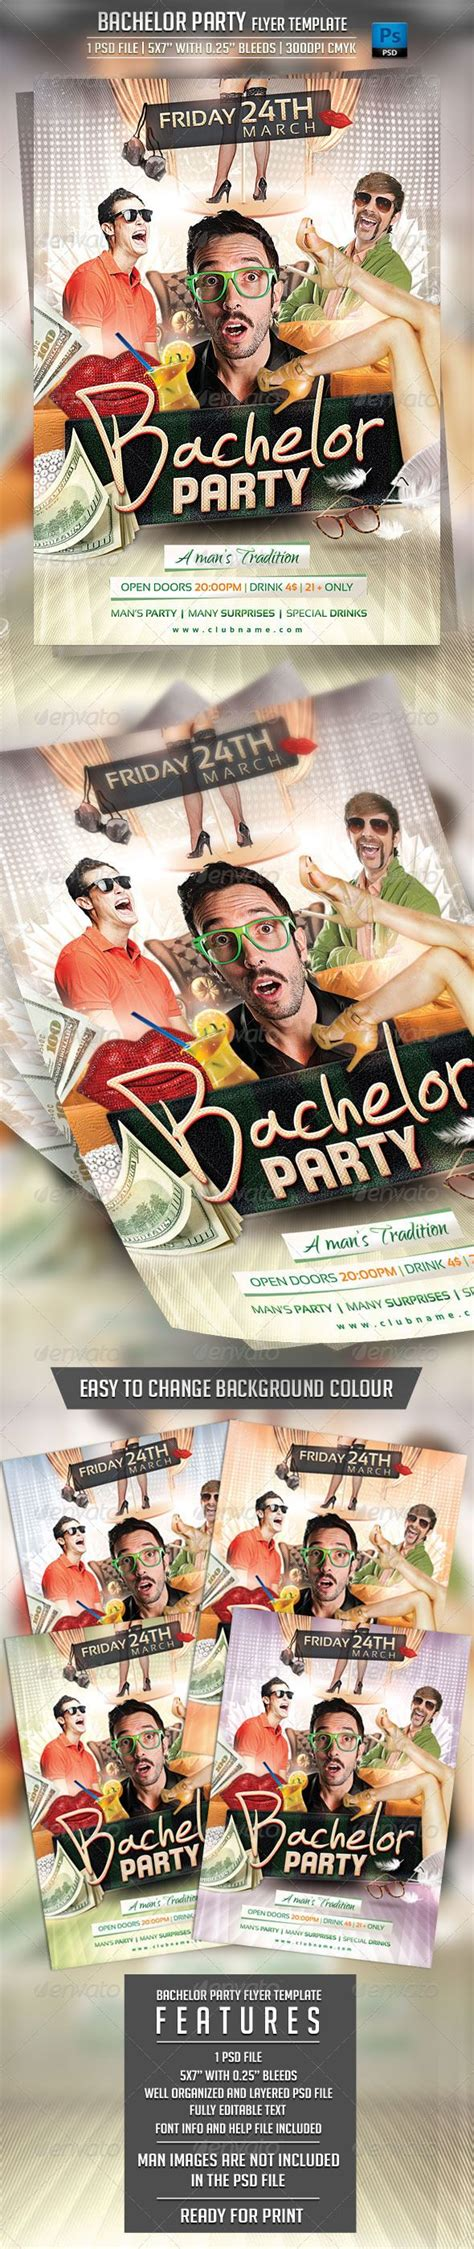 bachelor party flyer template bachelor party party